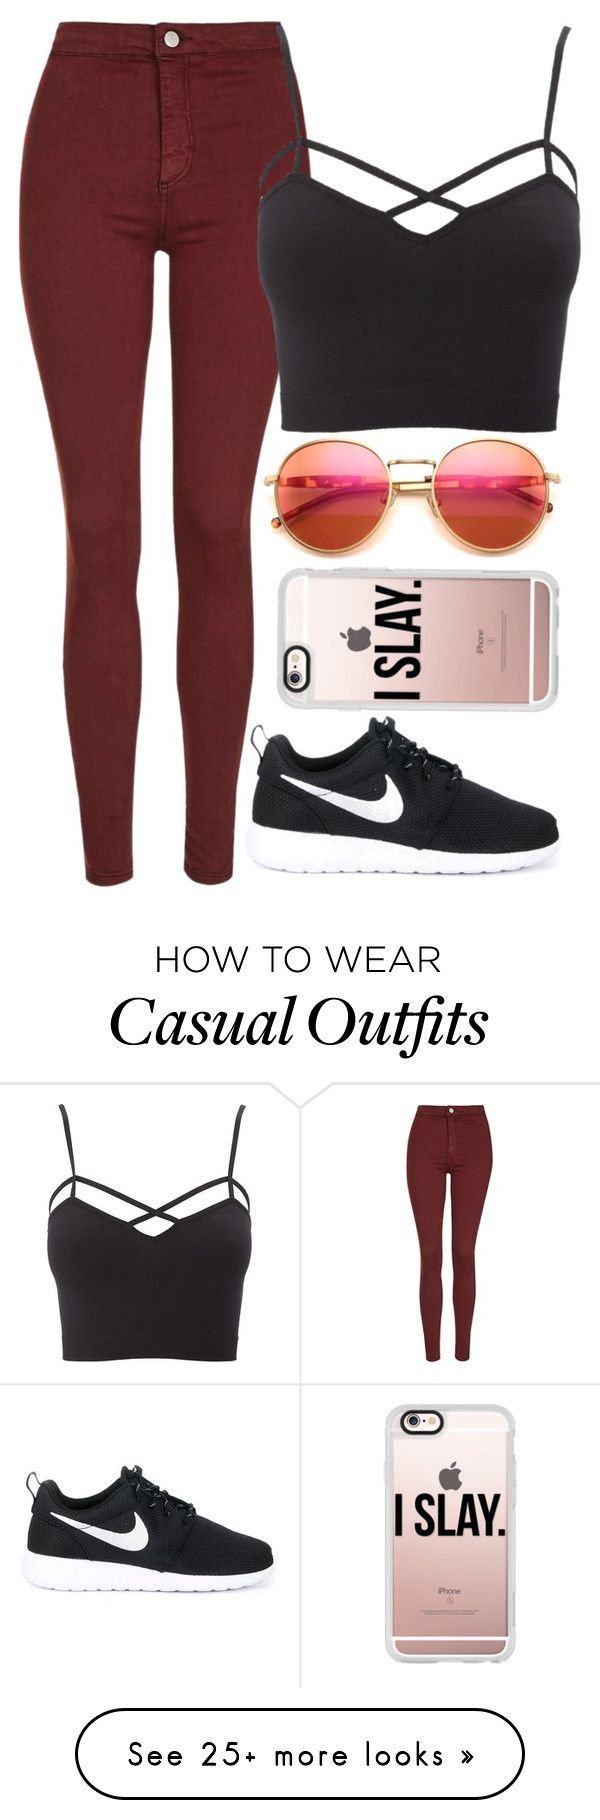 """Casual xx"" by eduardacardoso1999 on Polyvore featuring Topshop, Charlotte Russe, NIKE, Wildfox and Casetify"